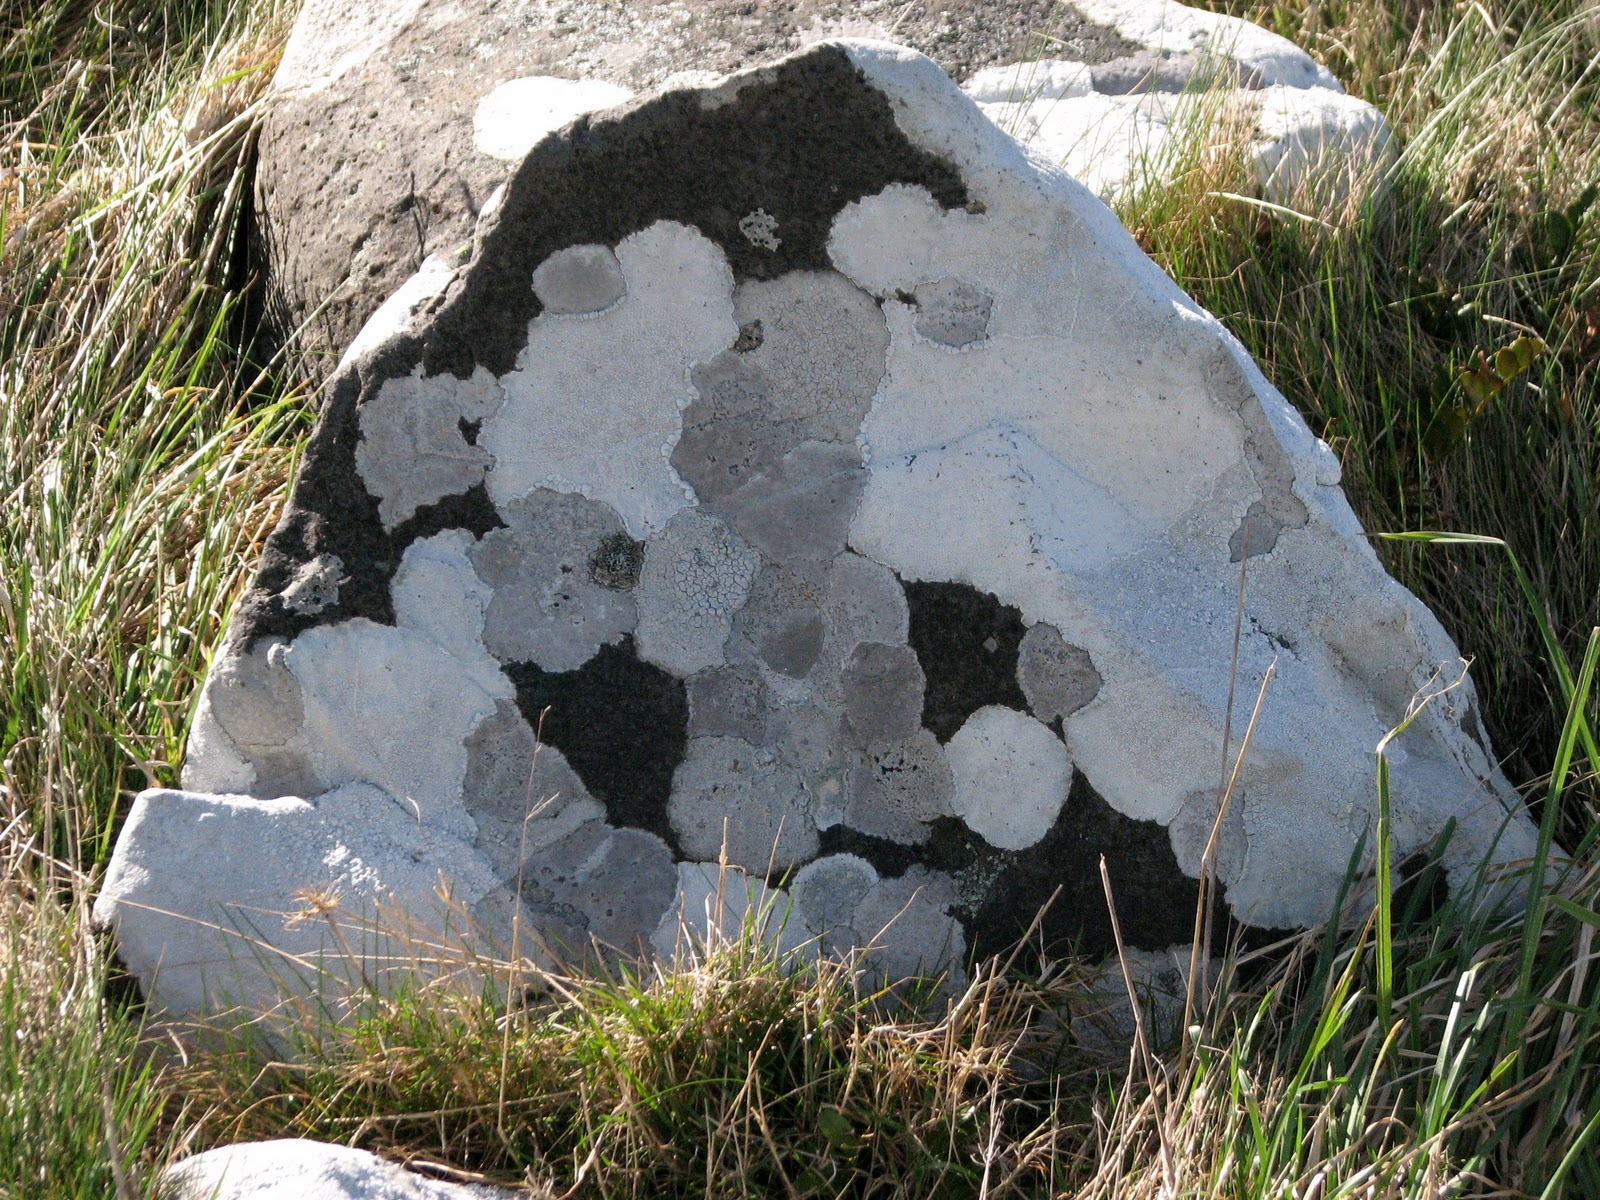 black & white spotted rock